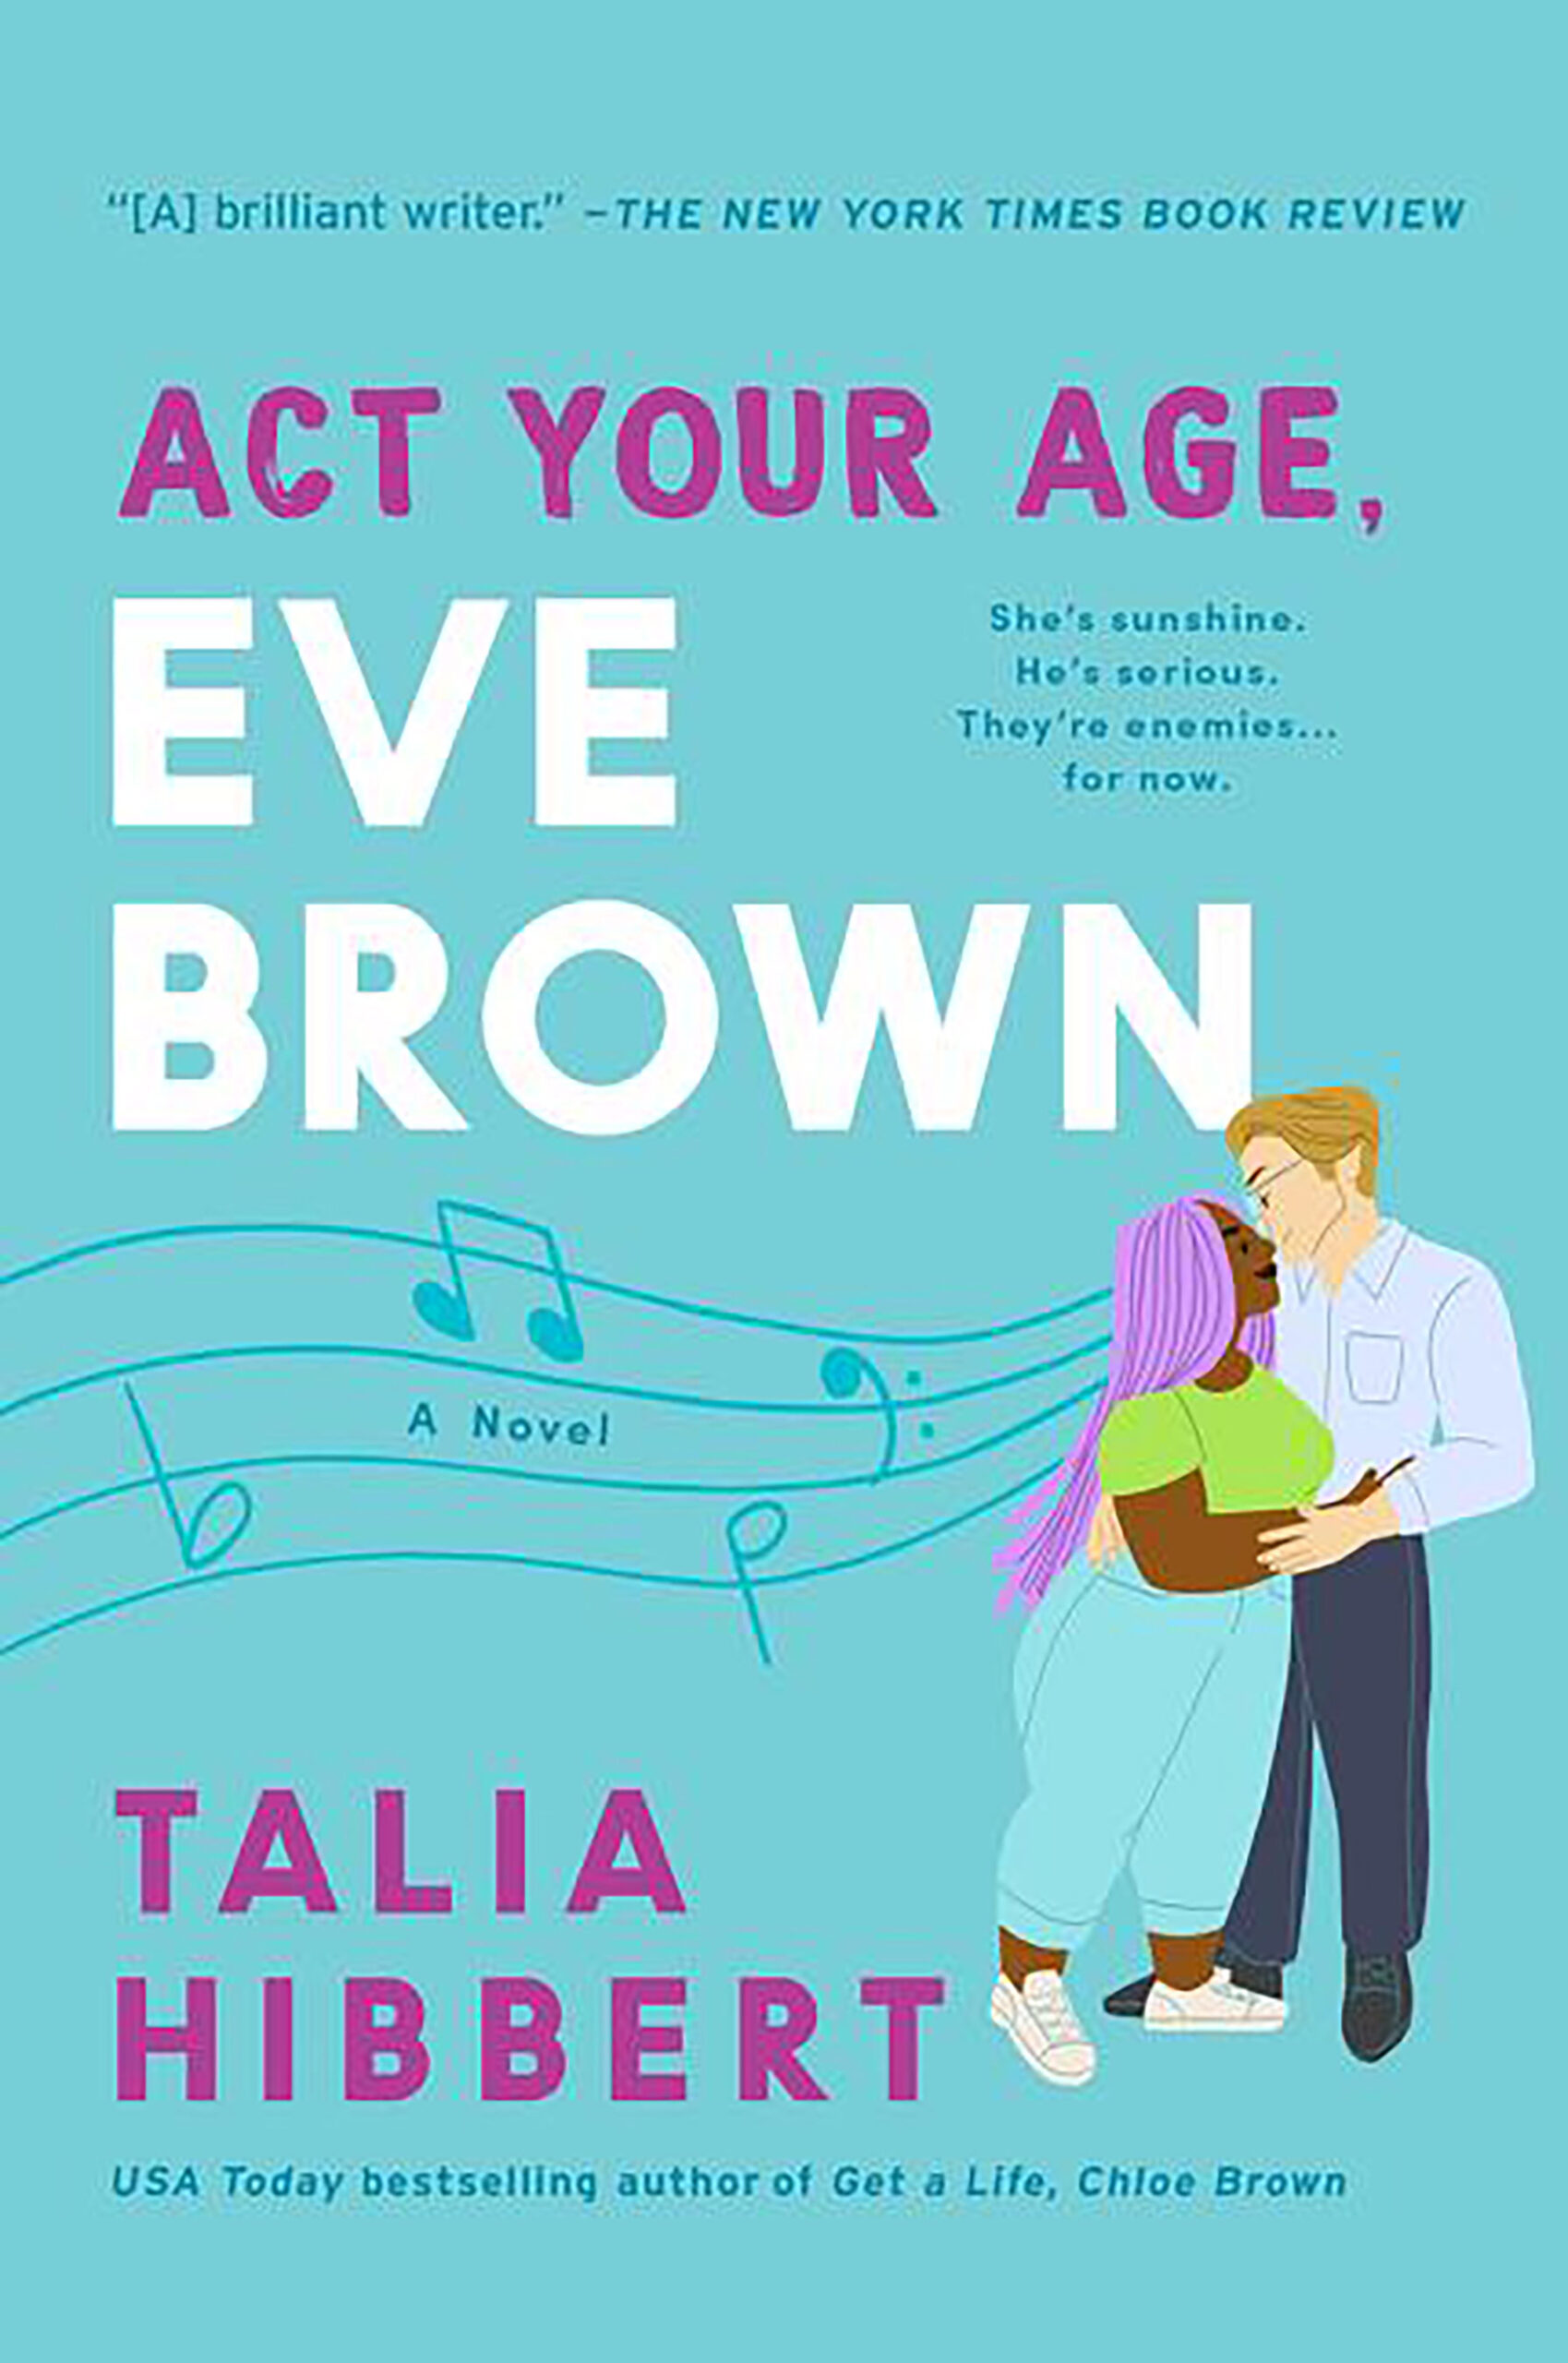 act-your-age-eve-brown-talia-hibbert